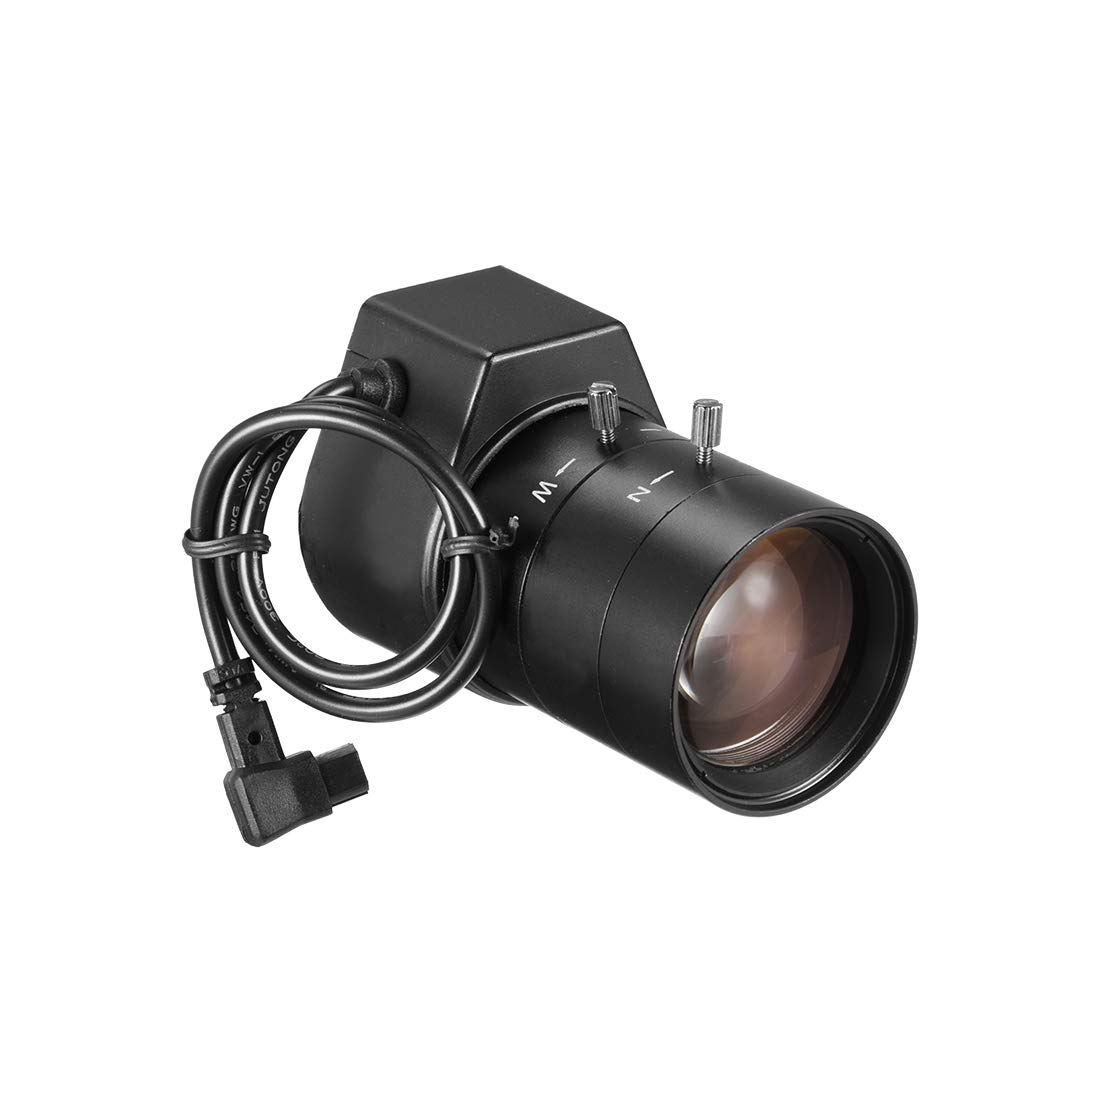 uxcell 6.0-60mm F1.6 FPV CCTV Lens Wide Angle for CCD Camera by uxcell